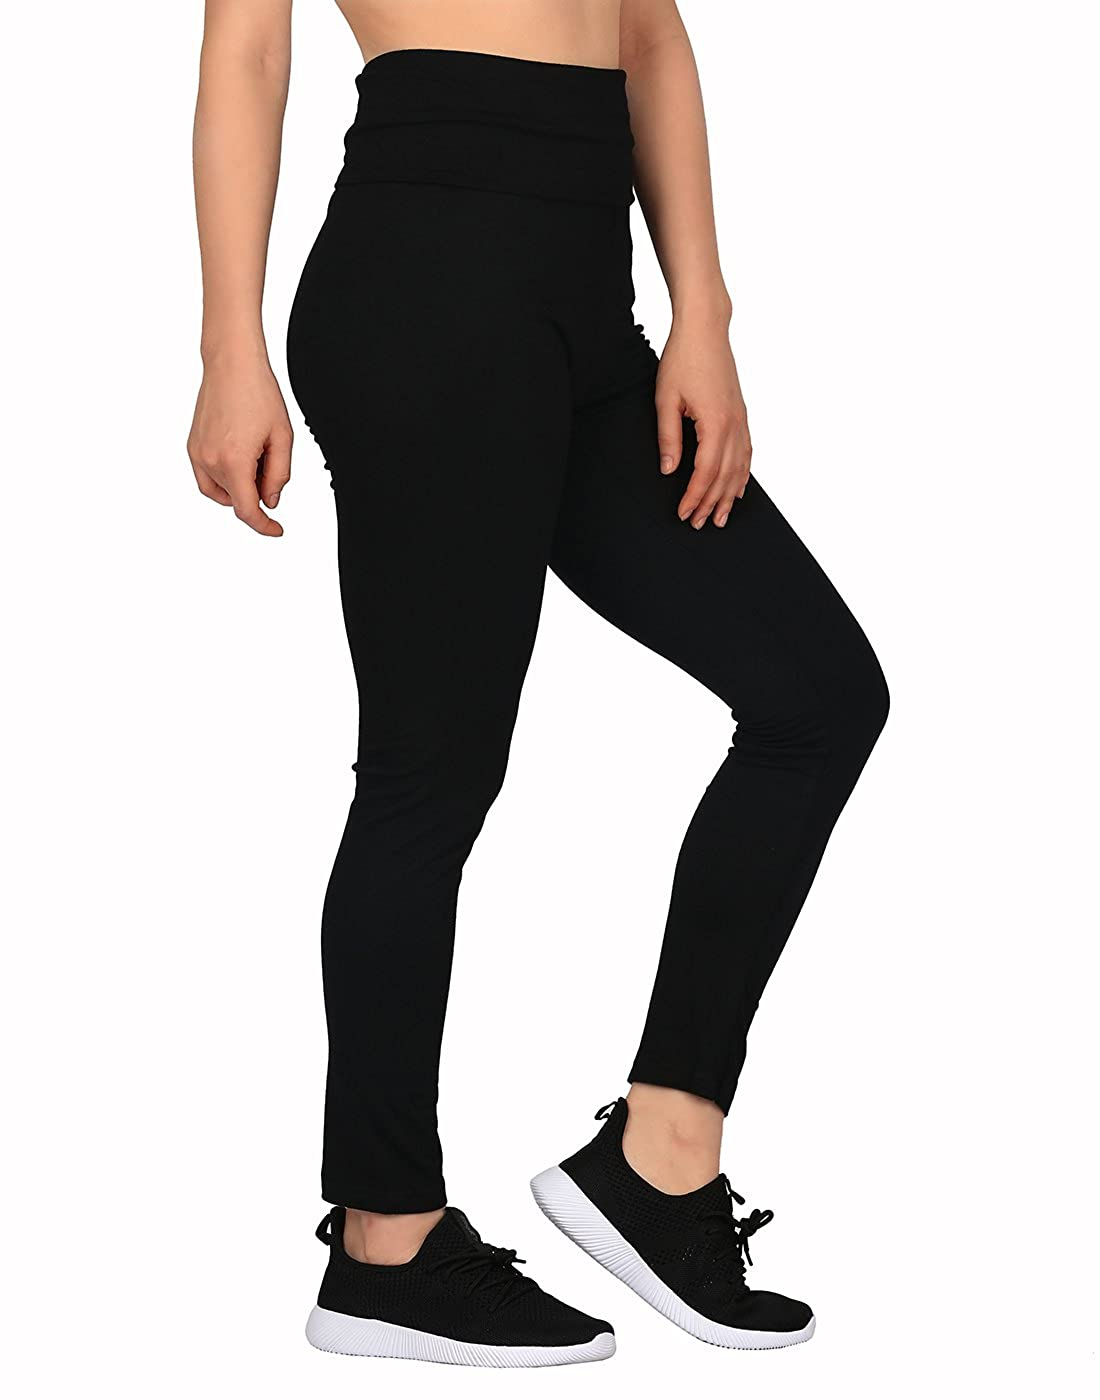 65b311521b1 HDE Women's Maternity Yoga Pants Pregnancy Stretch Fold Over Lounge Leggings  at Amazon Women's Clothing store: